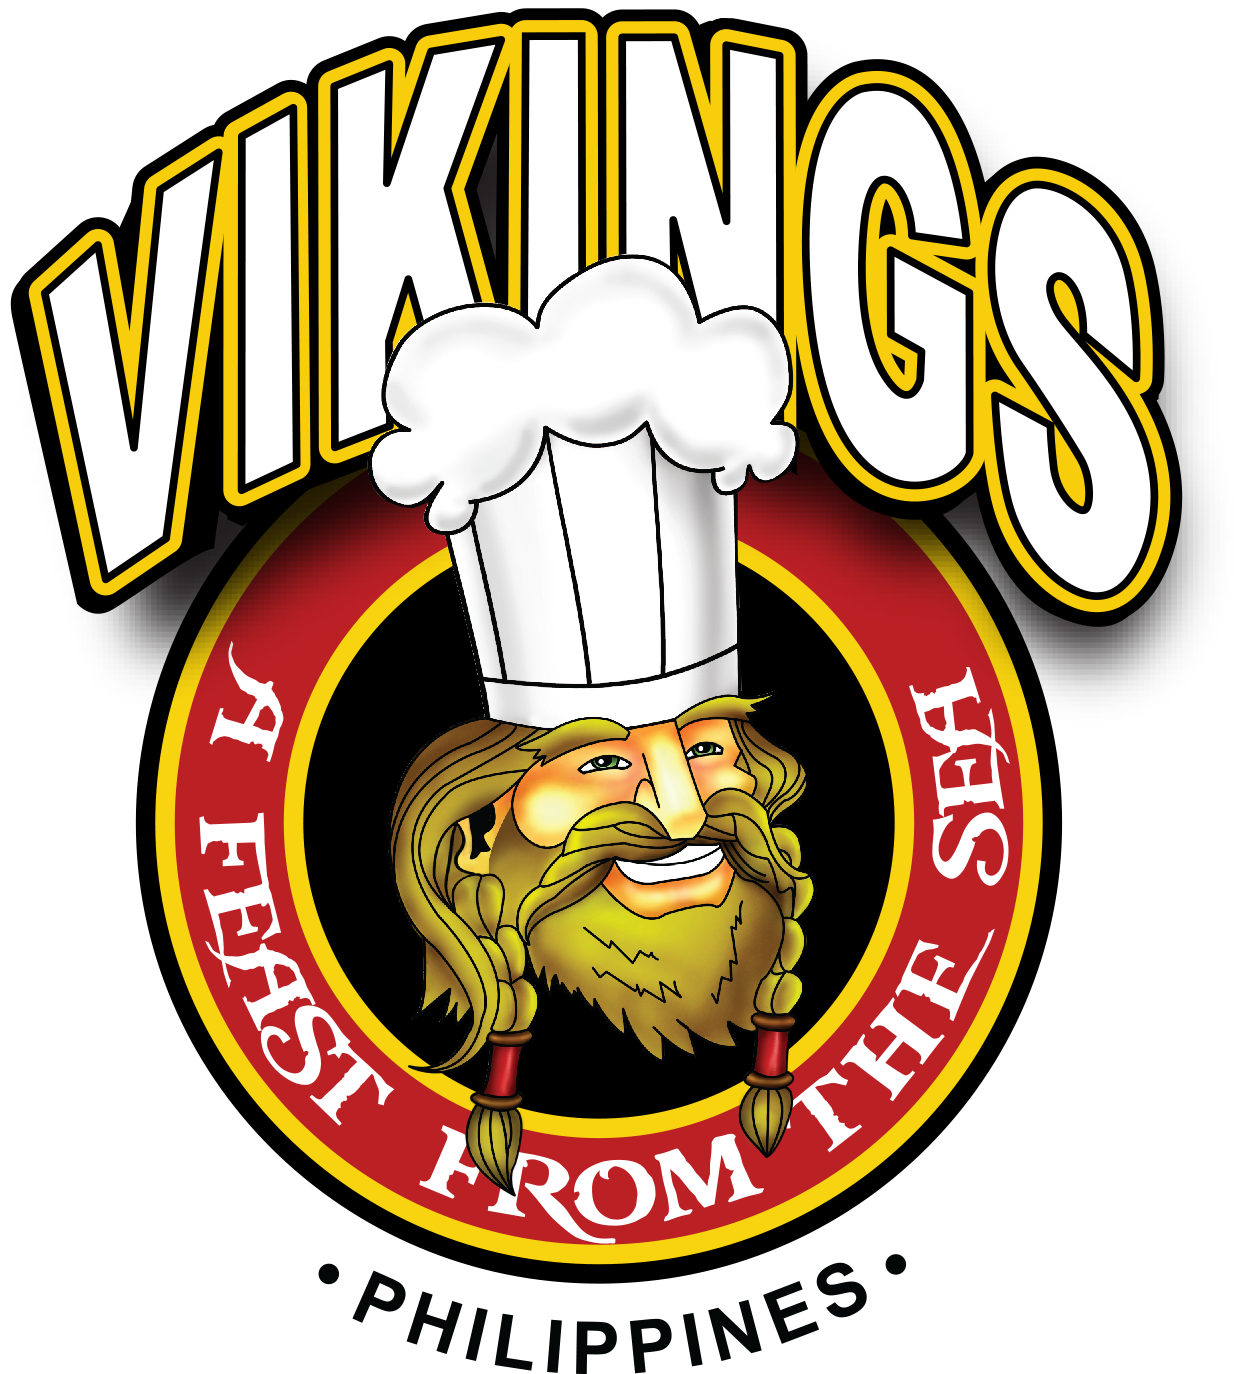 Restaurant vikings philippines. Feast clipart pinoy food